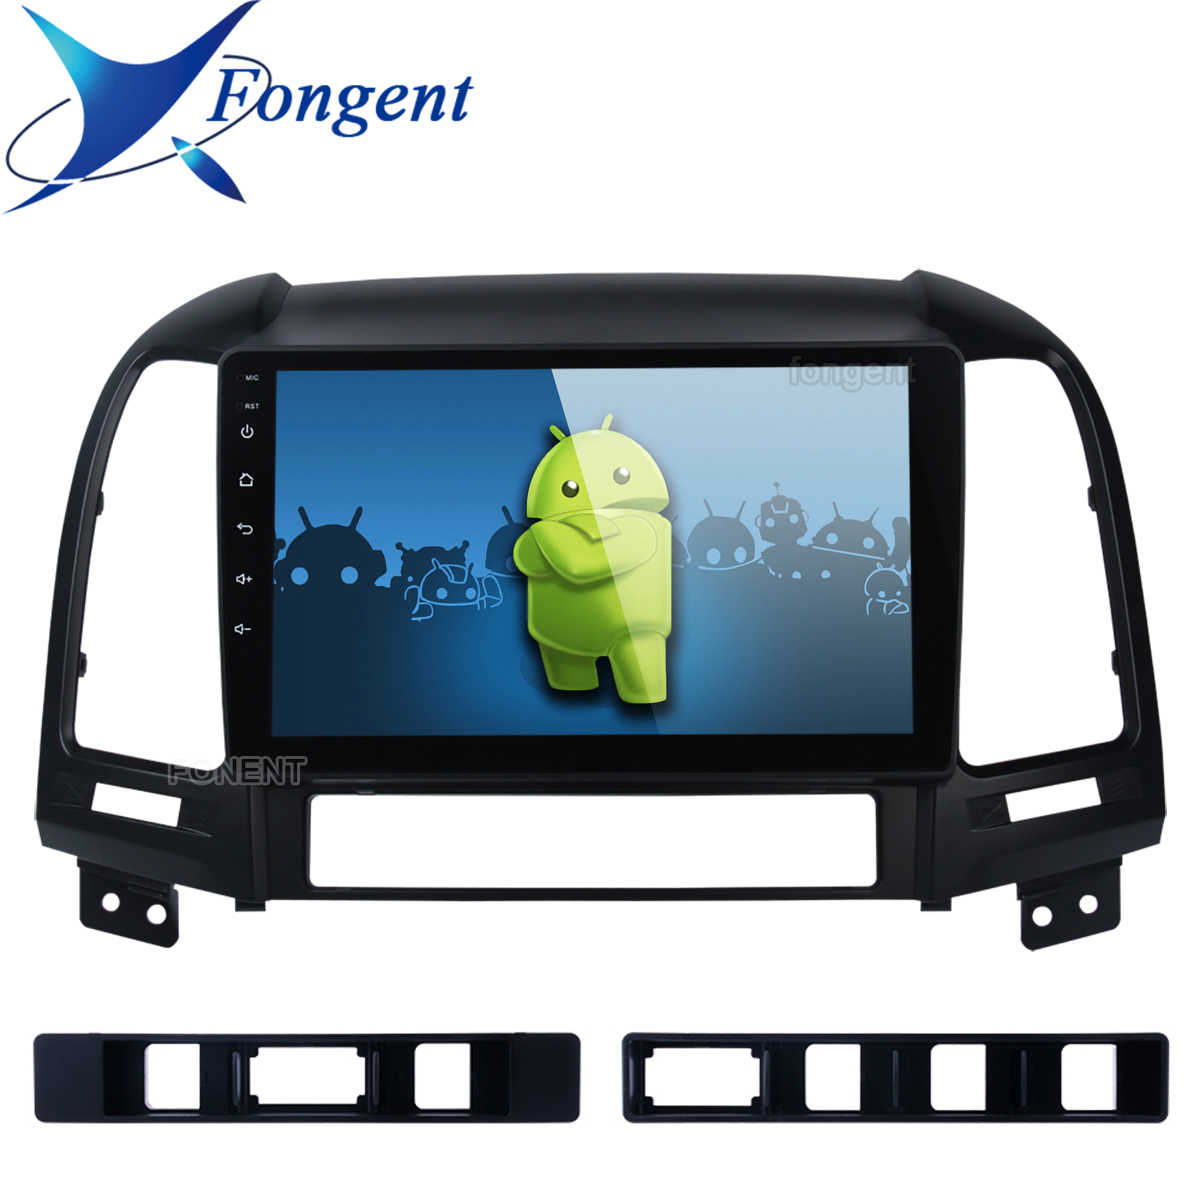 Android 9.0 Head Unit Voor Hyundai Santa Fe 2005 2006 2007 2008 2009 2010 2011 2012 Autoradio Multimedia Speler gps Stereo Audio